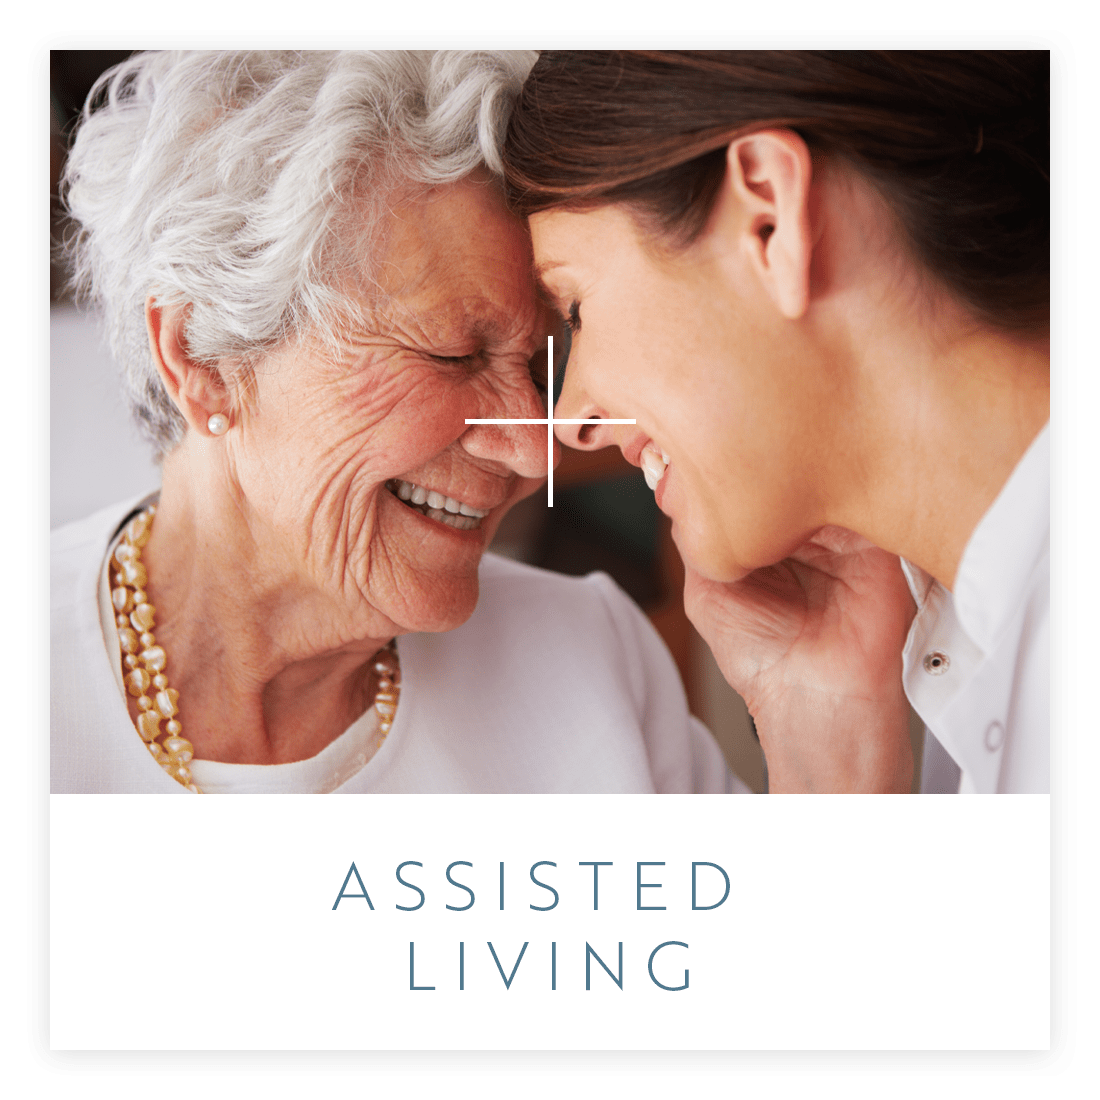 View our Assisted Living services at Chevy Chase House in Washington, District of Columbia